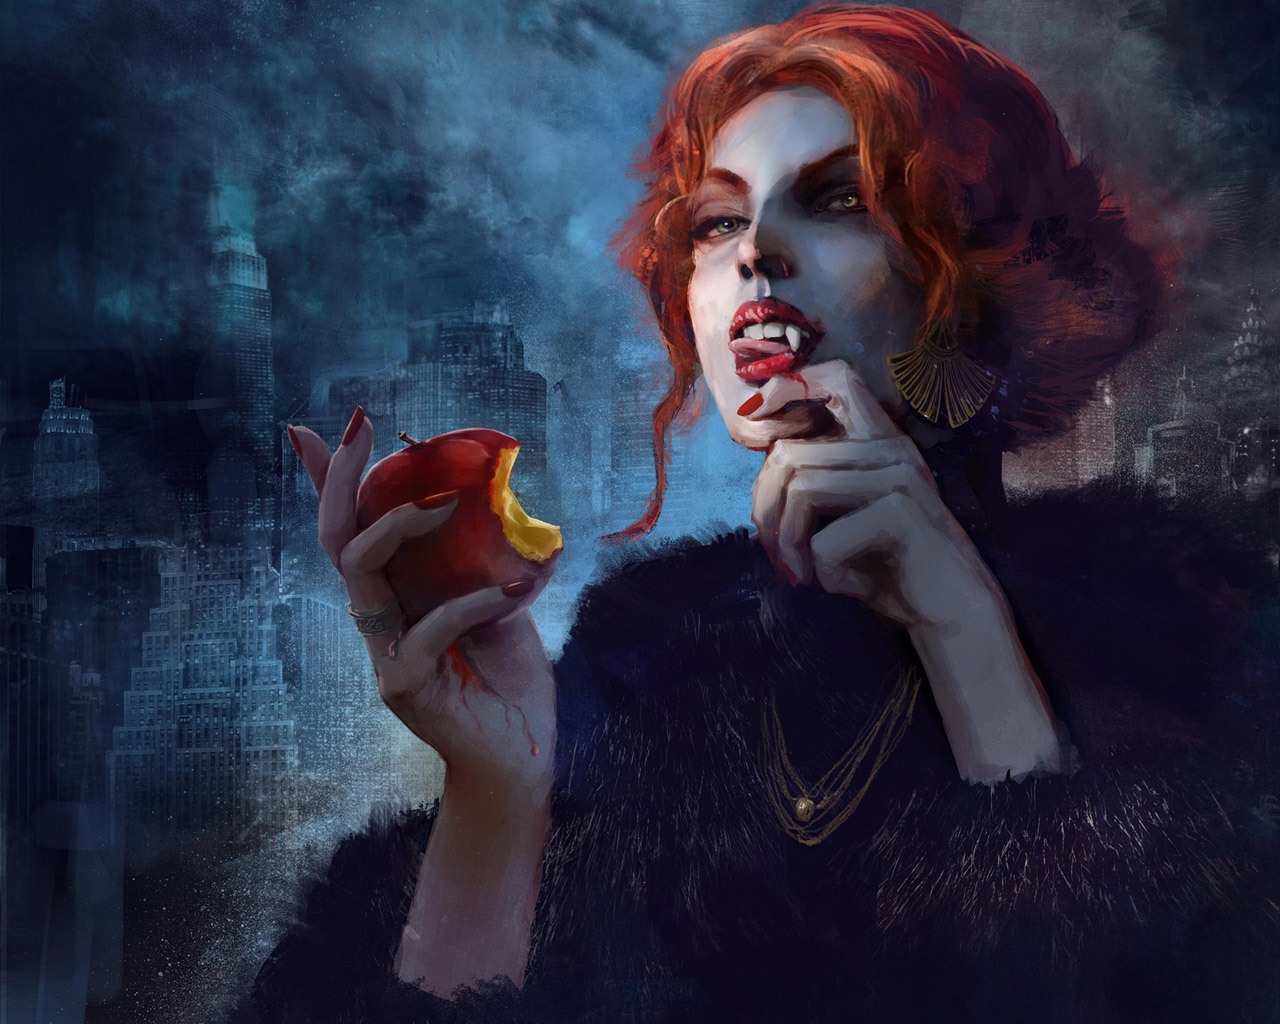 Free Vampire: The Masquerade - Coteries of New York Wallpaper in 1280x1024